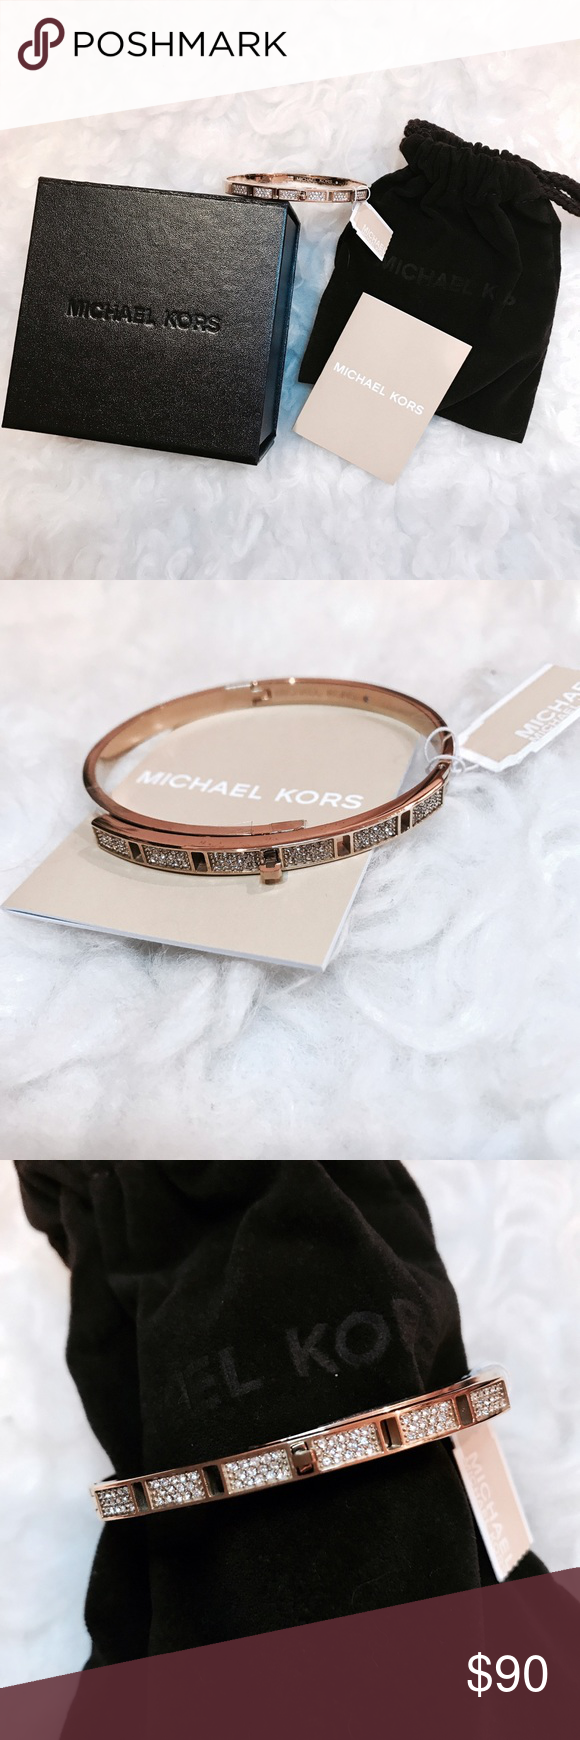 Michael Kors Pavé Gold Tone Bracelet Bangle BRAND NEW IN BOX!!! Michael Kors Pavé Gold Bracelet Bangle (One size fits all).   • Can stack with other bracelets or a watch! Just twist the little Lock in the middle of the bracelet to take off or put on, beautiful! So shiny too. Comes with the original box, bag, and tags. Would make a great gift.  **Retails $145** Michael Kors Jewelry Bracelets